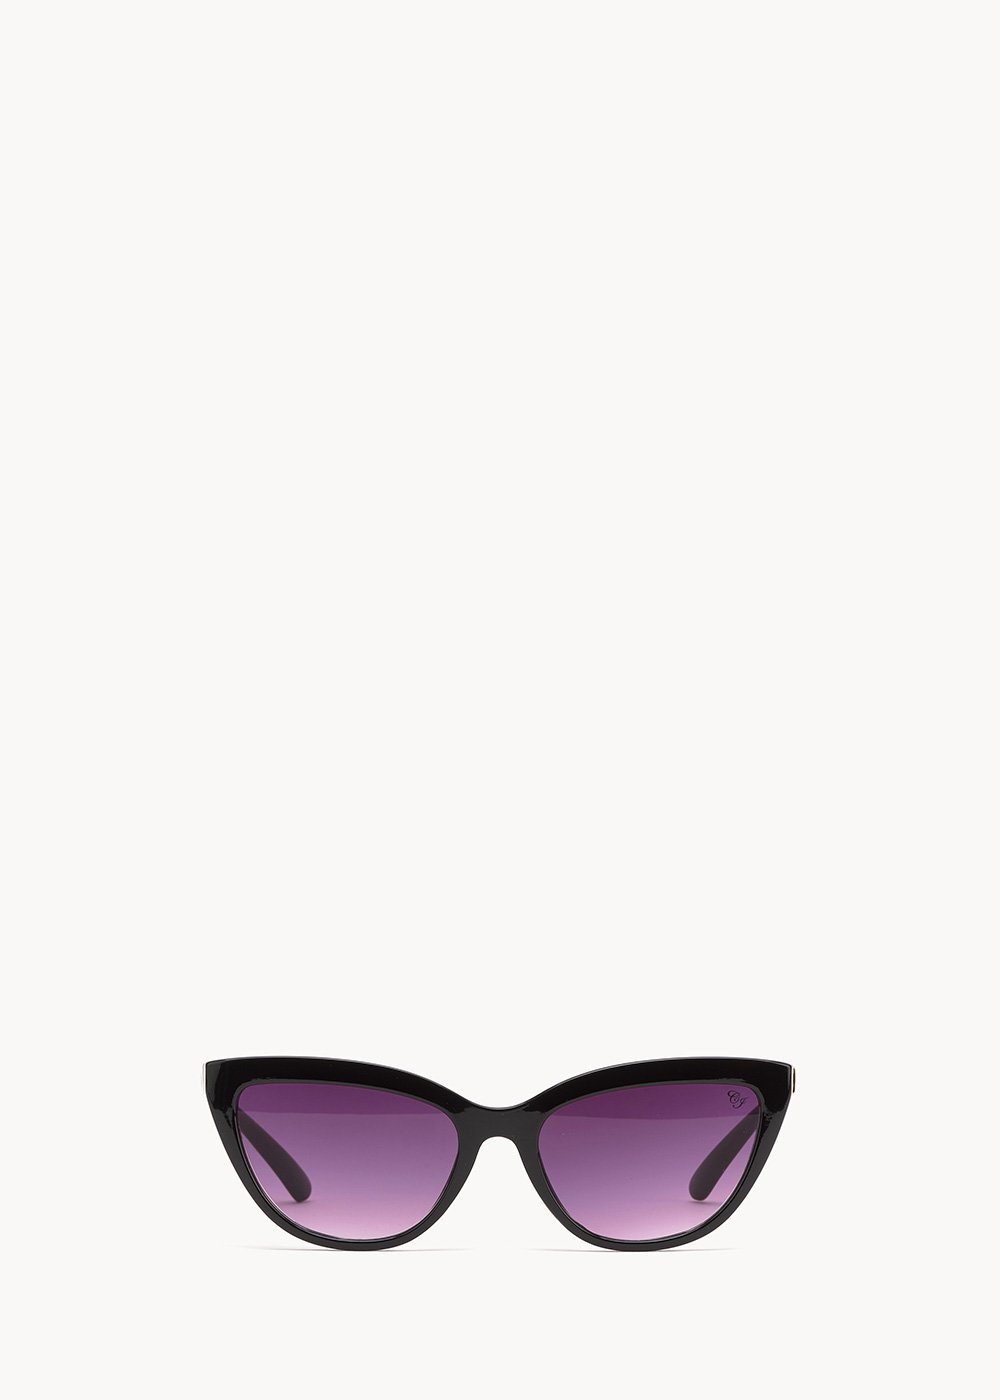 Sunglasses with animal-printed frame - Black - Woman